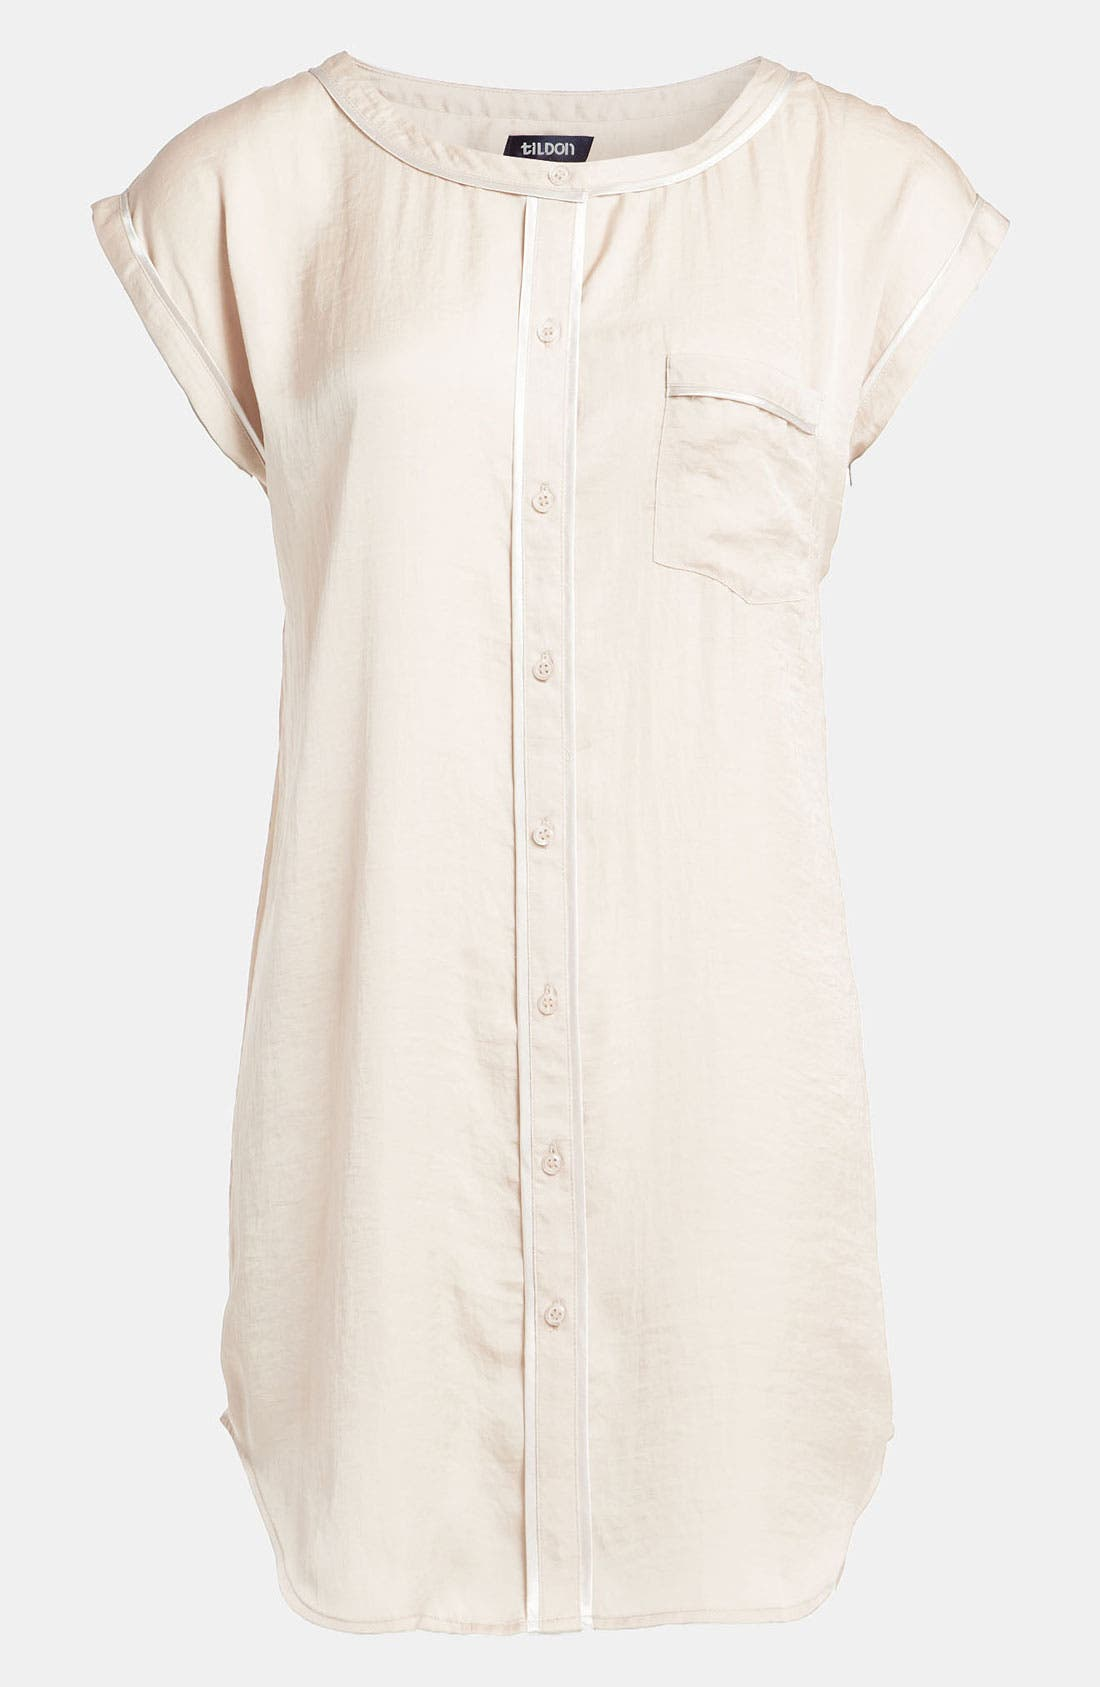 Alternate Image 1 Selected - Tildon 'Pajama' Tunic Top